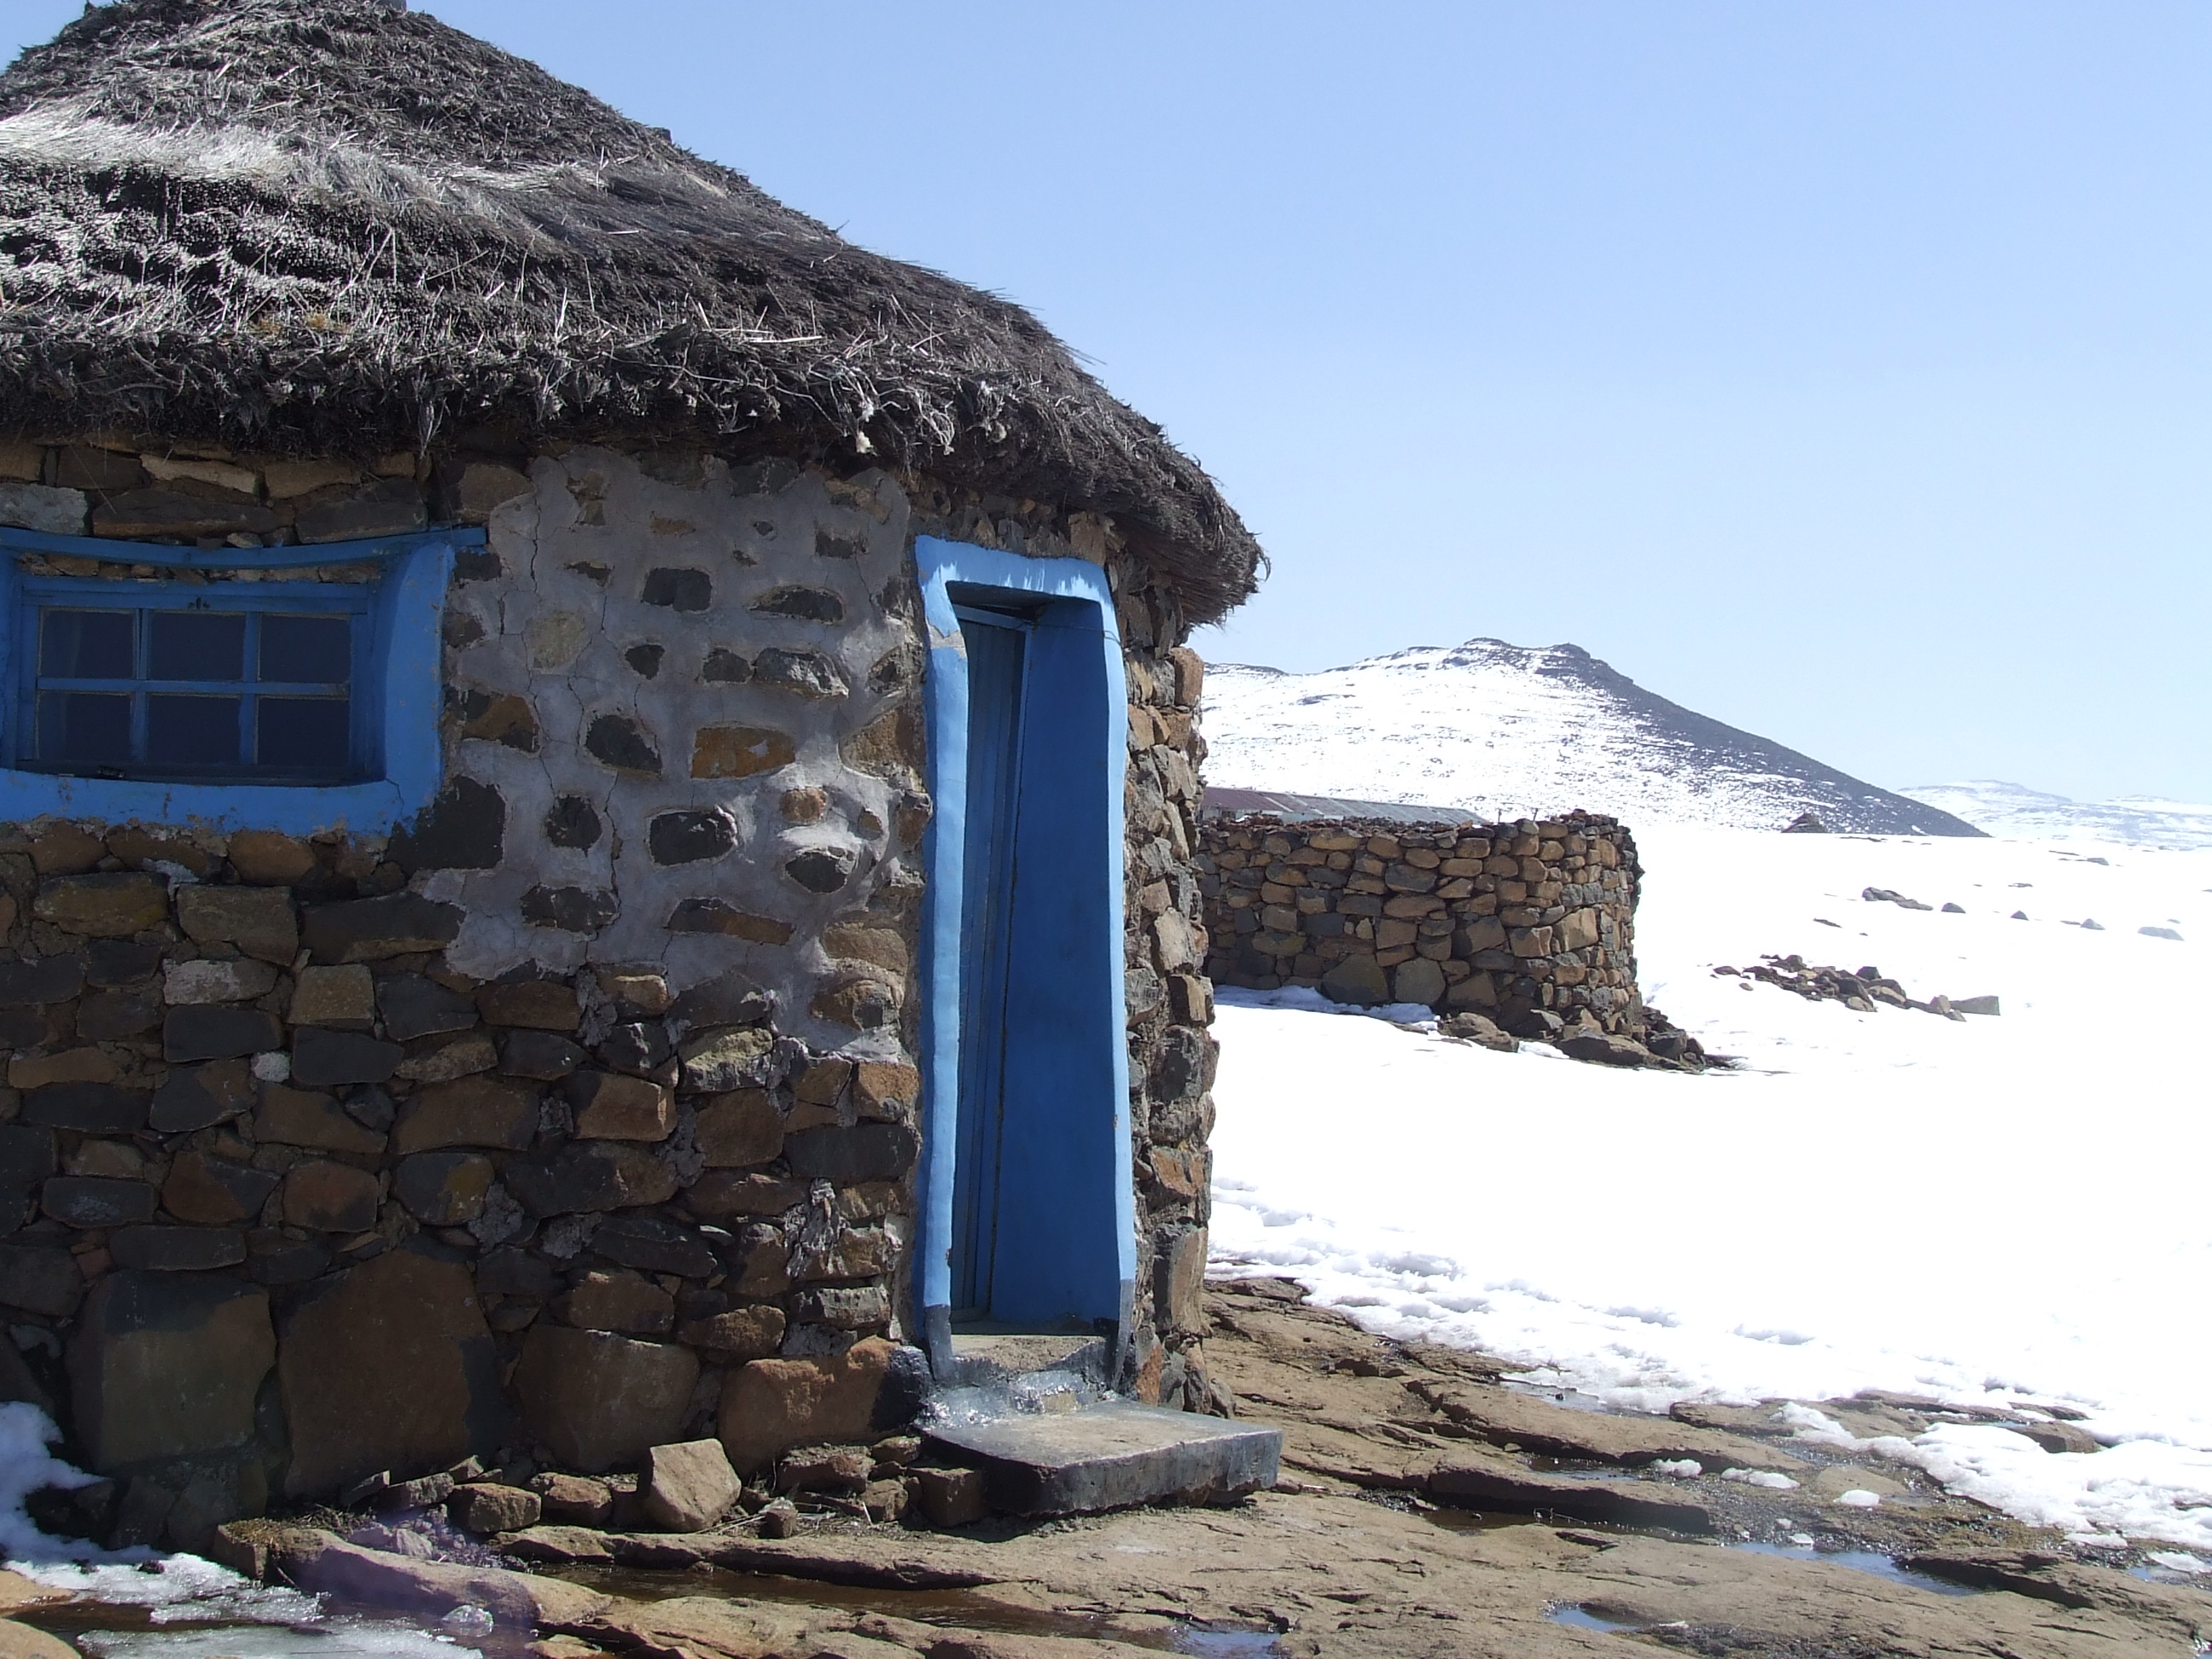 Village in the snow, Lesotho